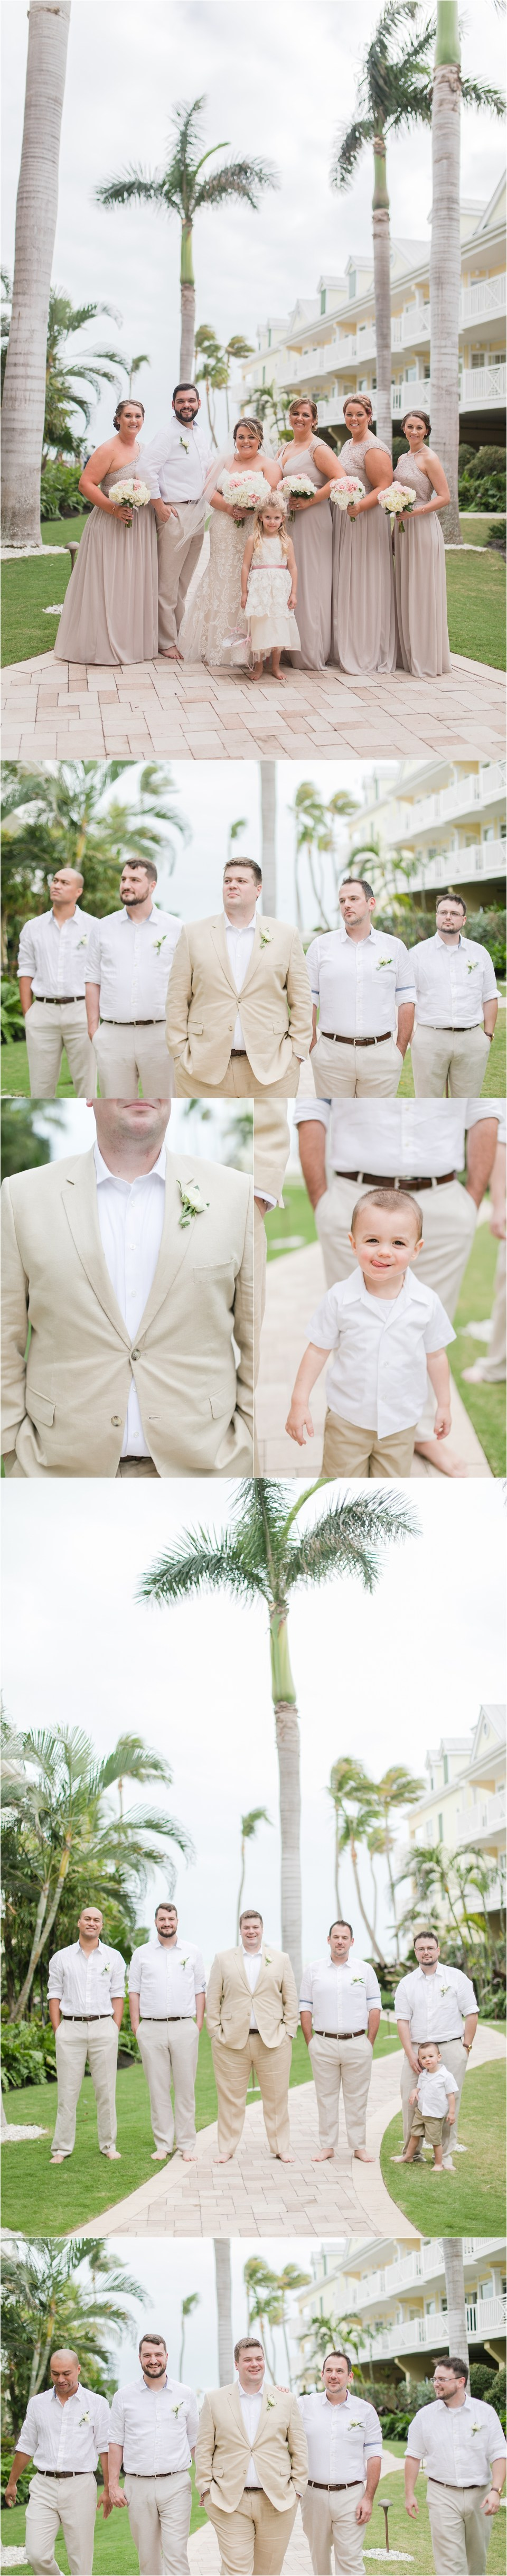 Southernmost beach resort Key West Destination Wedding Photographer_0343